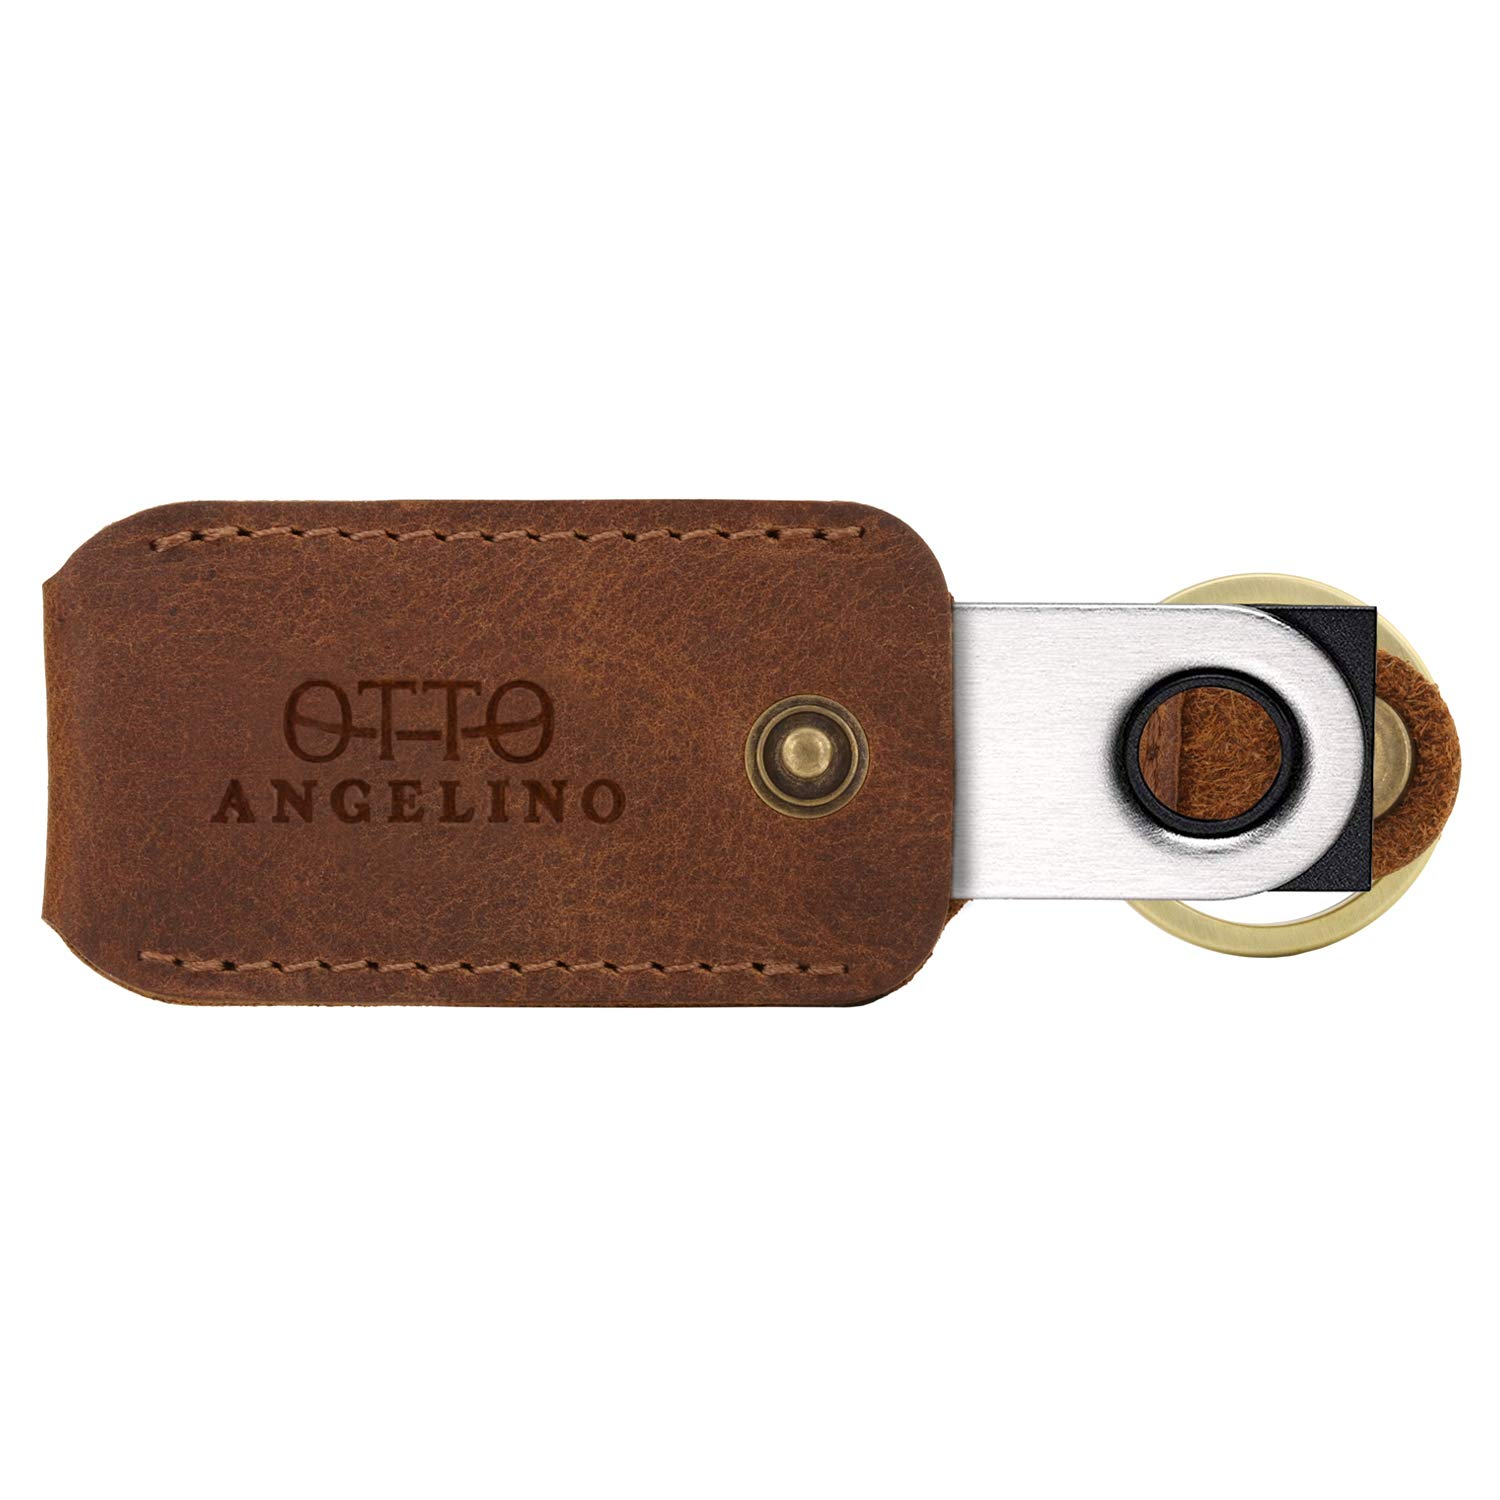 Otto Angelino Genuine Leather Case with Keyring for Ledger Nano S Bitcoin Wallet Unisex (Brown)